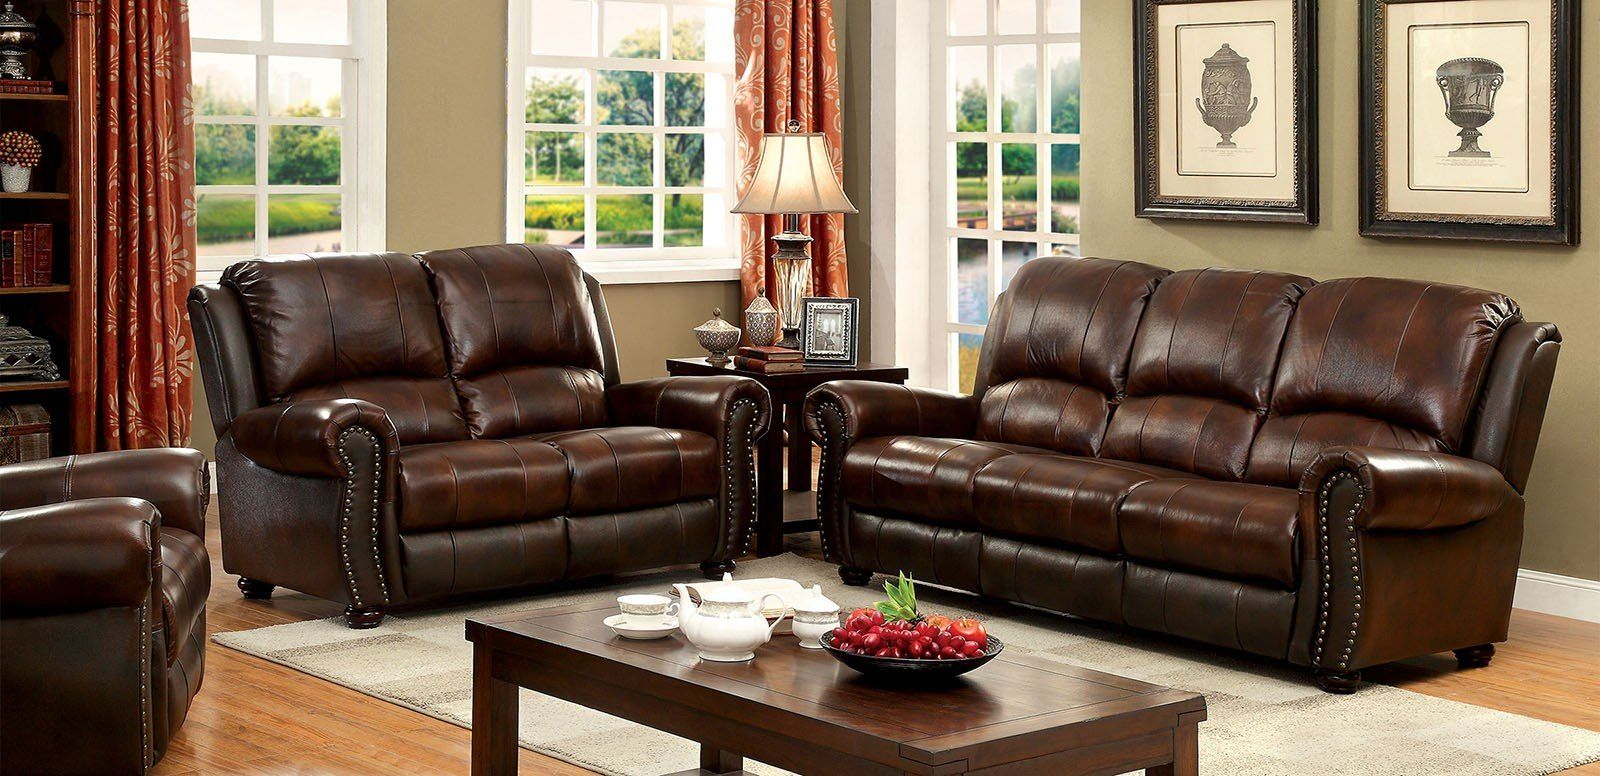 Best Turton Cm6191 Sf Transitional Brown Top Grain Leather 400 x 300